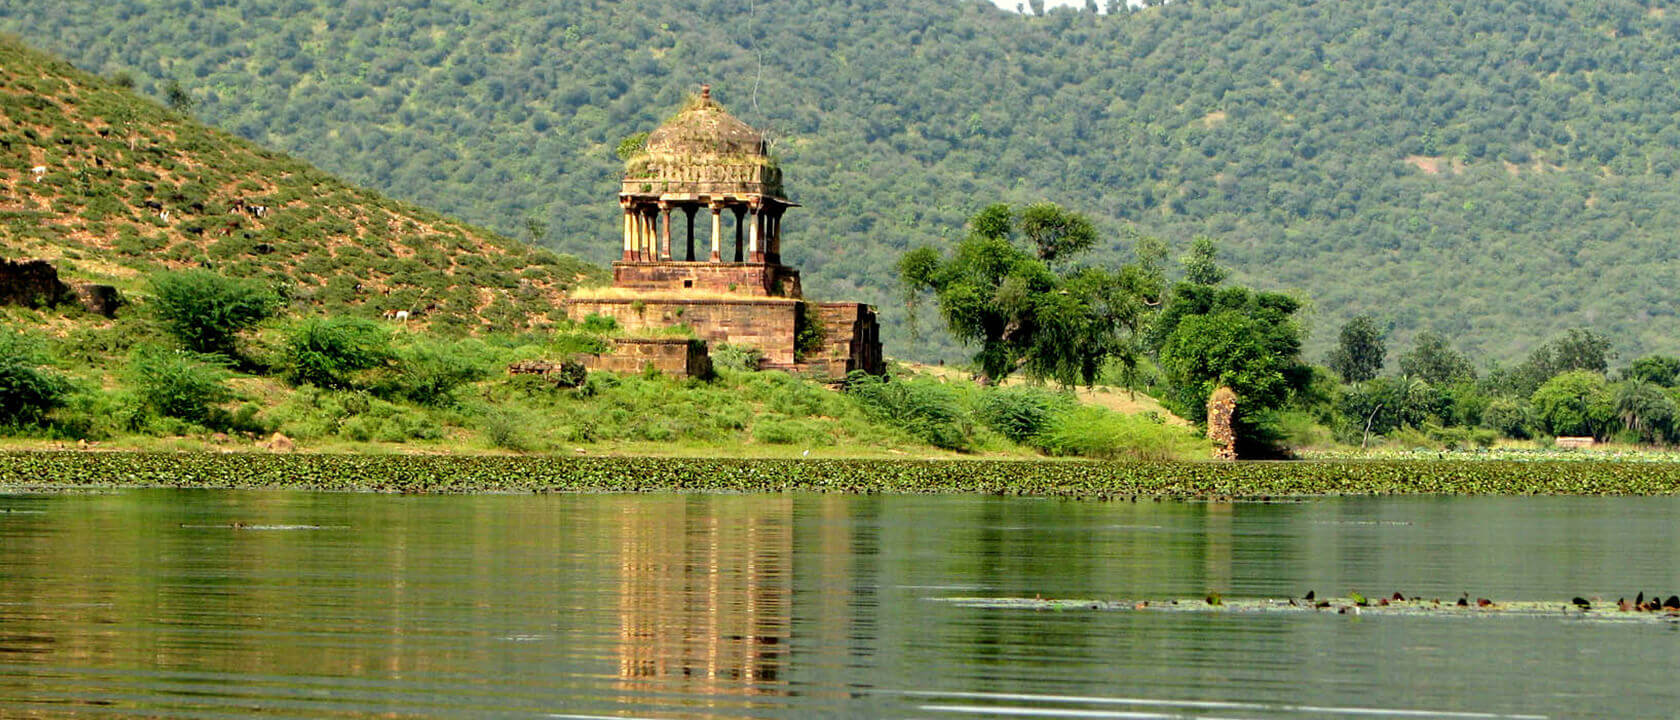 Baran District: History, Geography, Natural Places to See